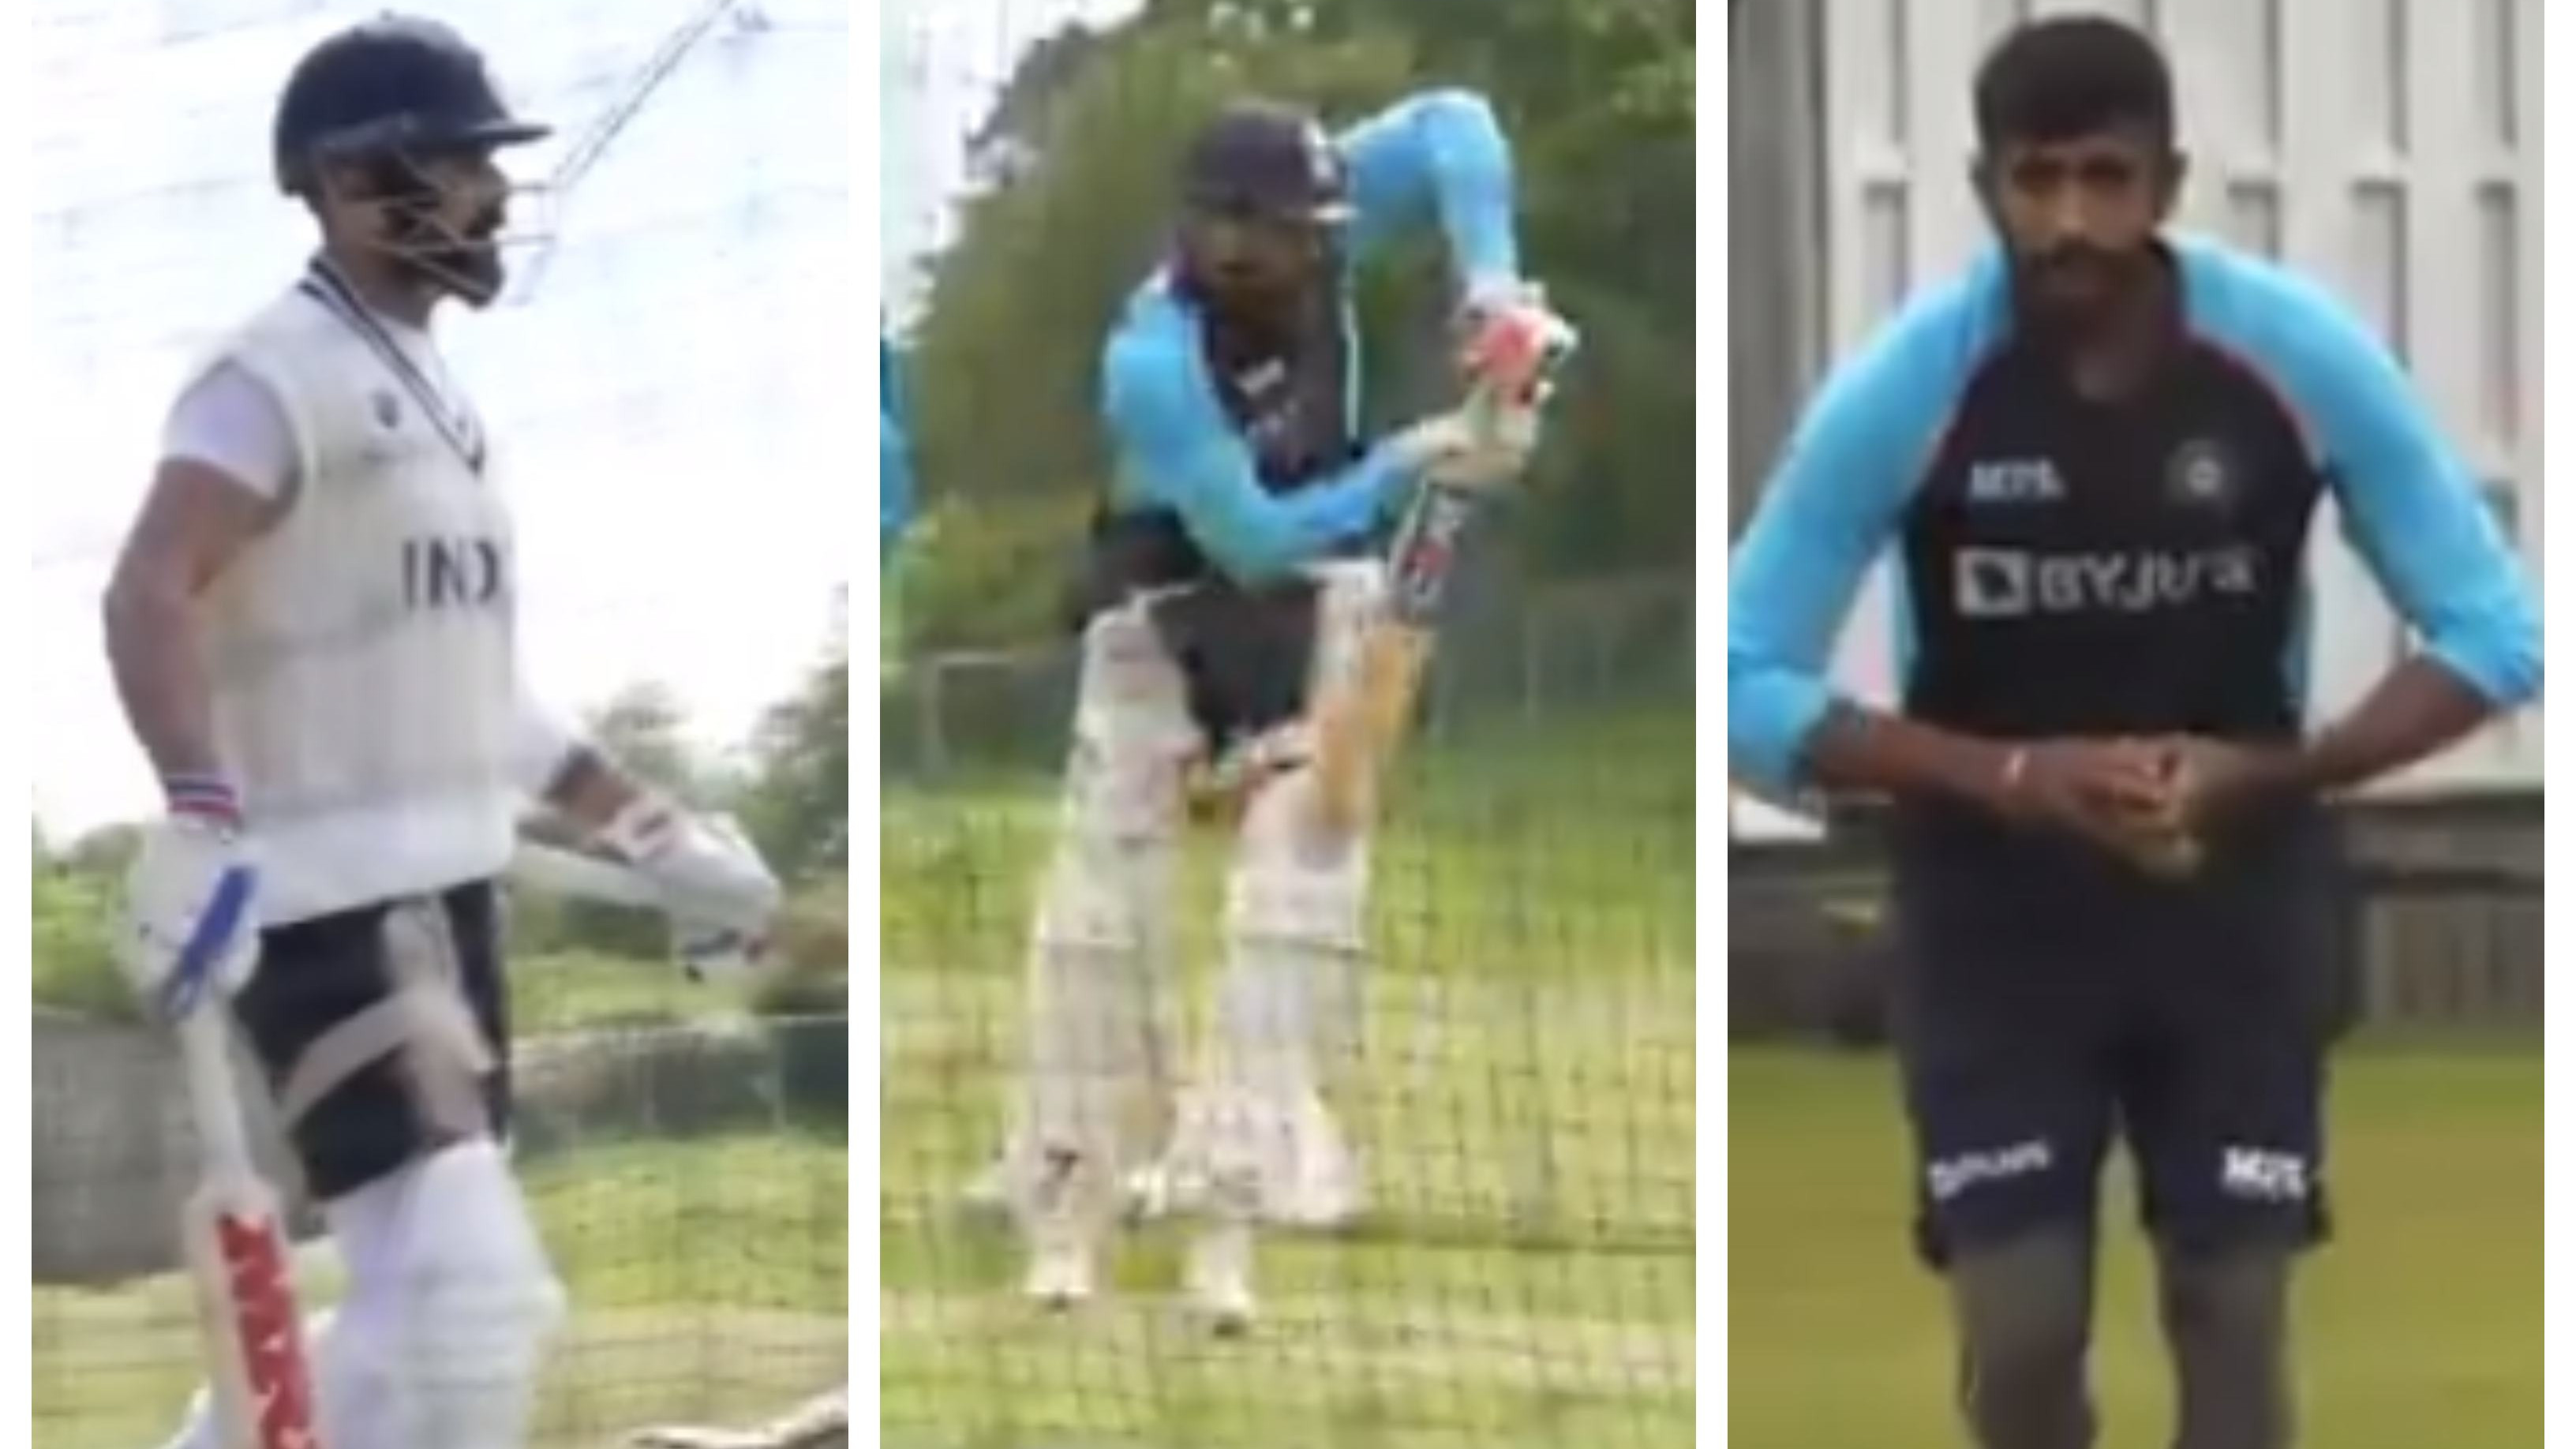 WTC 2021 Final: WATCH – Team India sweat it out in the nets after completing quarantine in Southampton